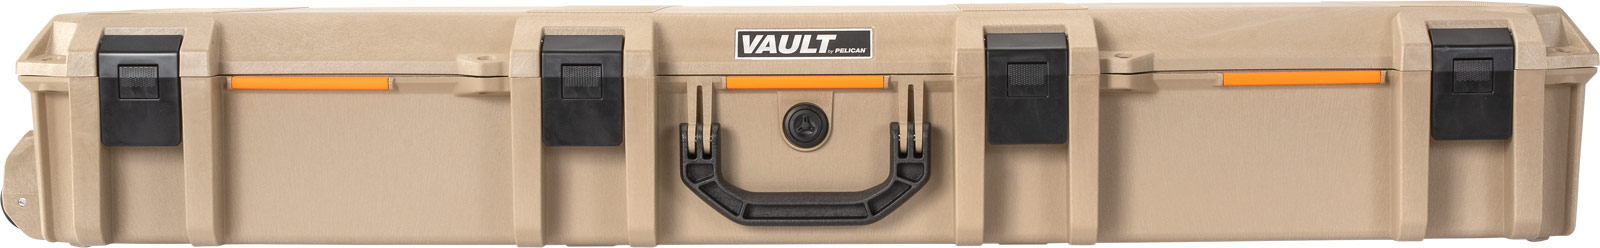 pelican vauilt v730 tactical firearm case